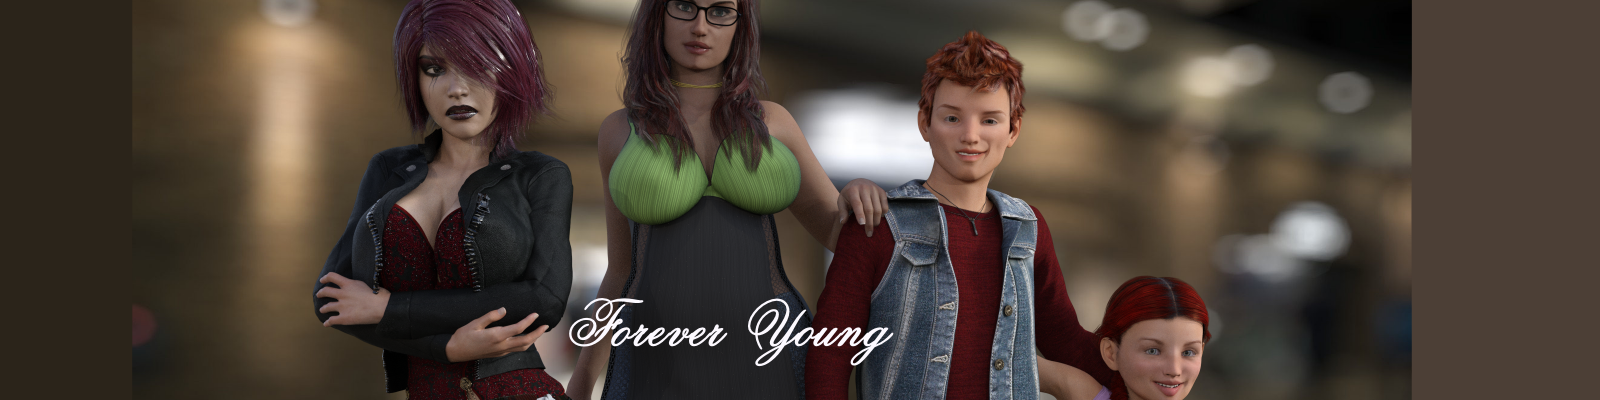 Forever Young - Demo